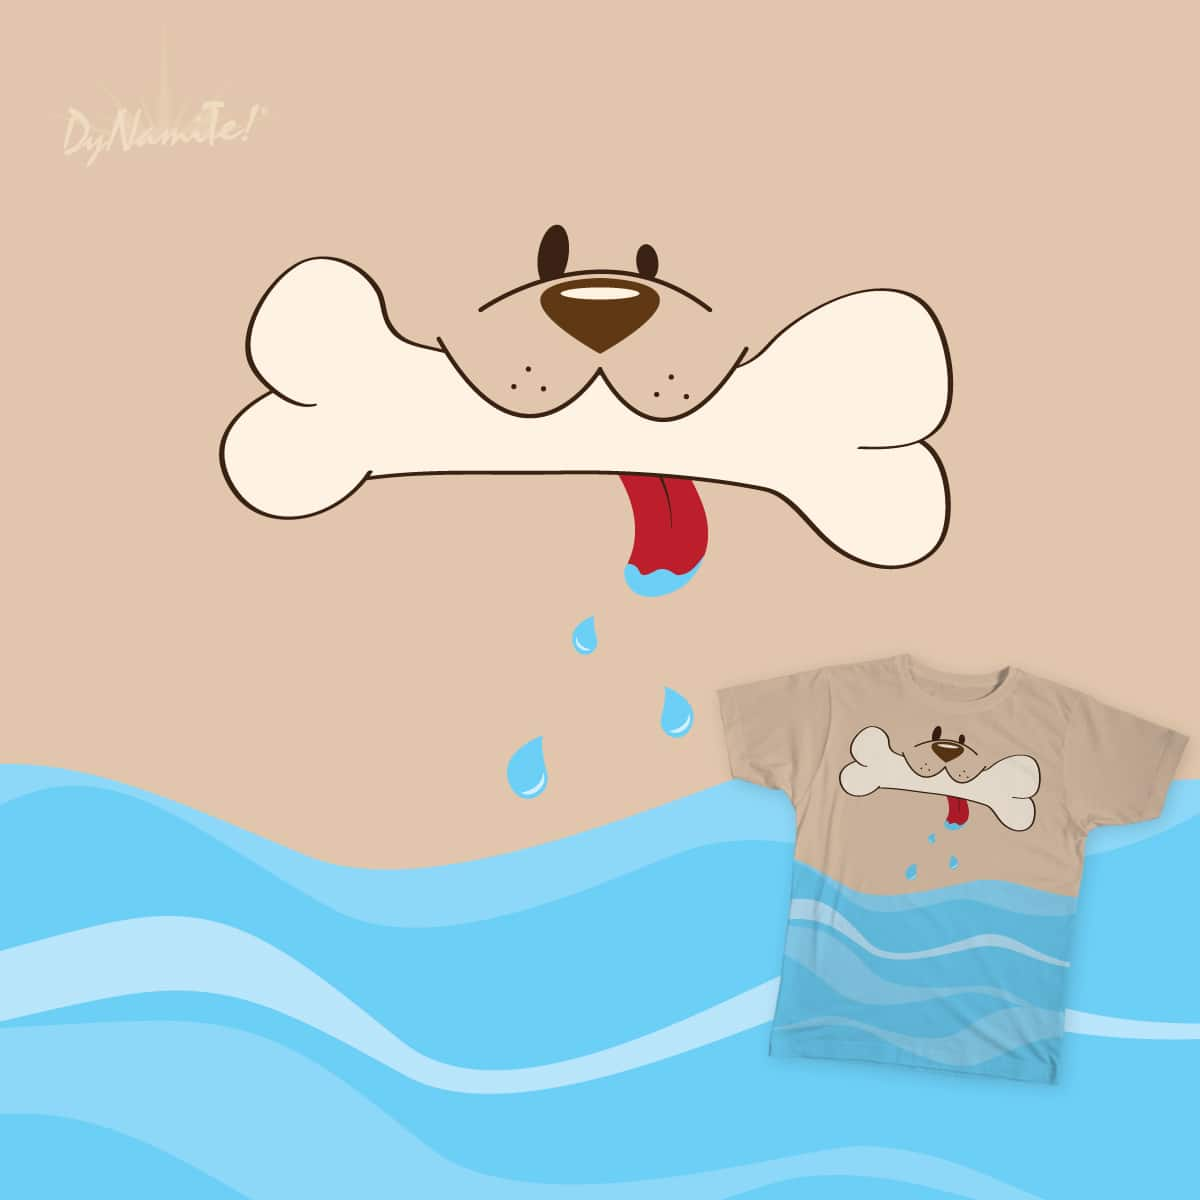 My Slobberful Dog by thedynasmiles on Threadless